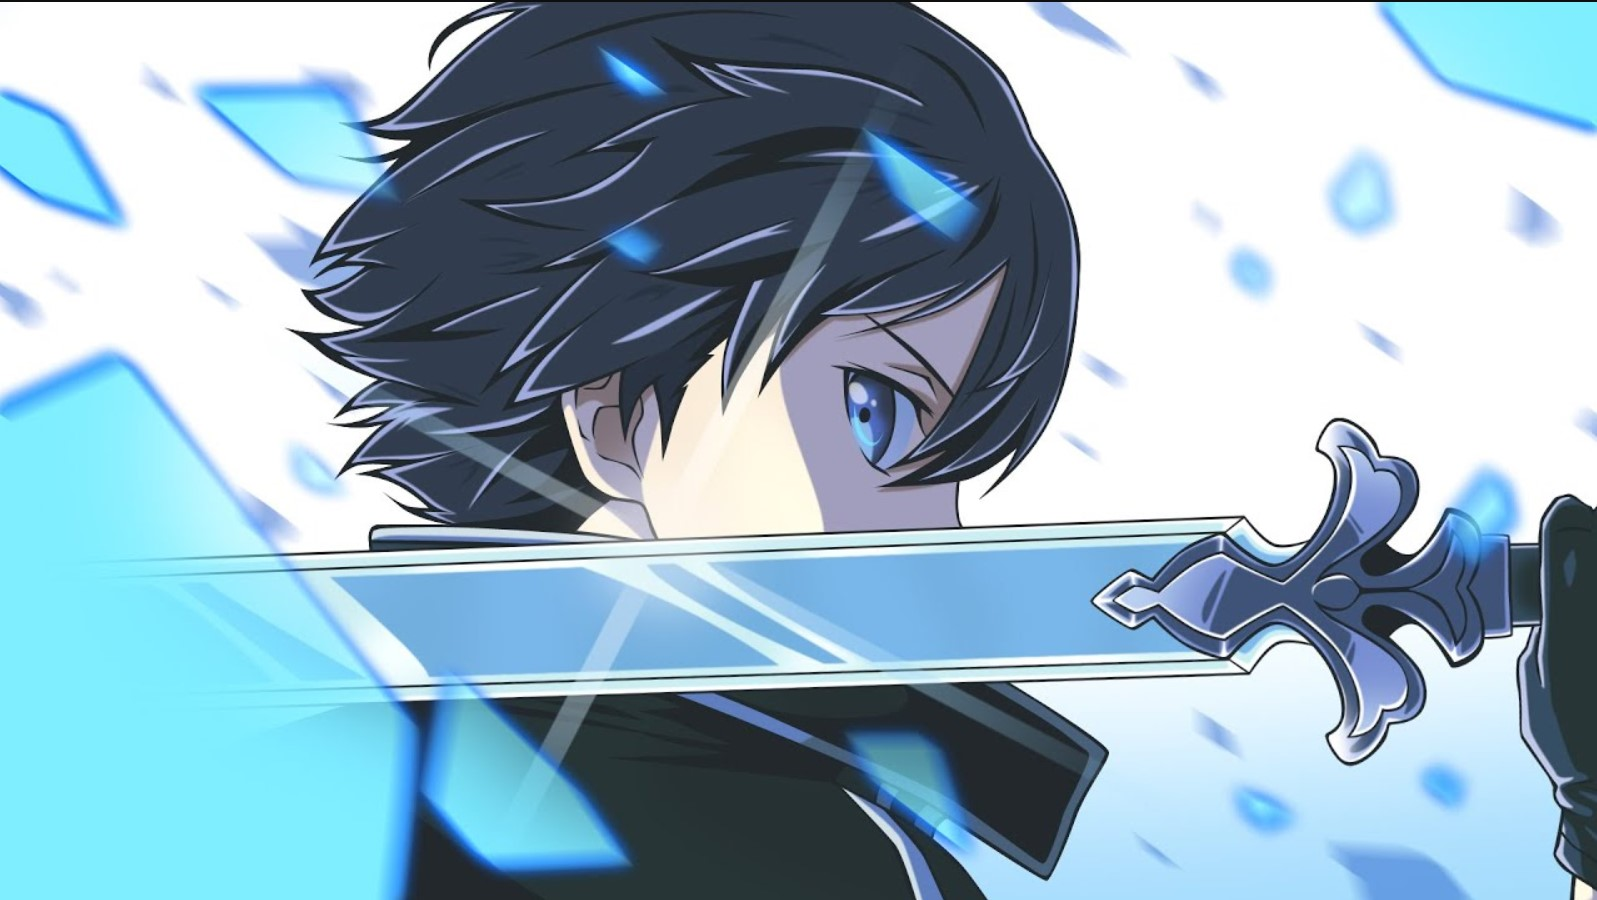 SAO: Alicization War of Underworld- sword art online watch order guide